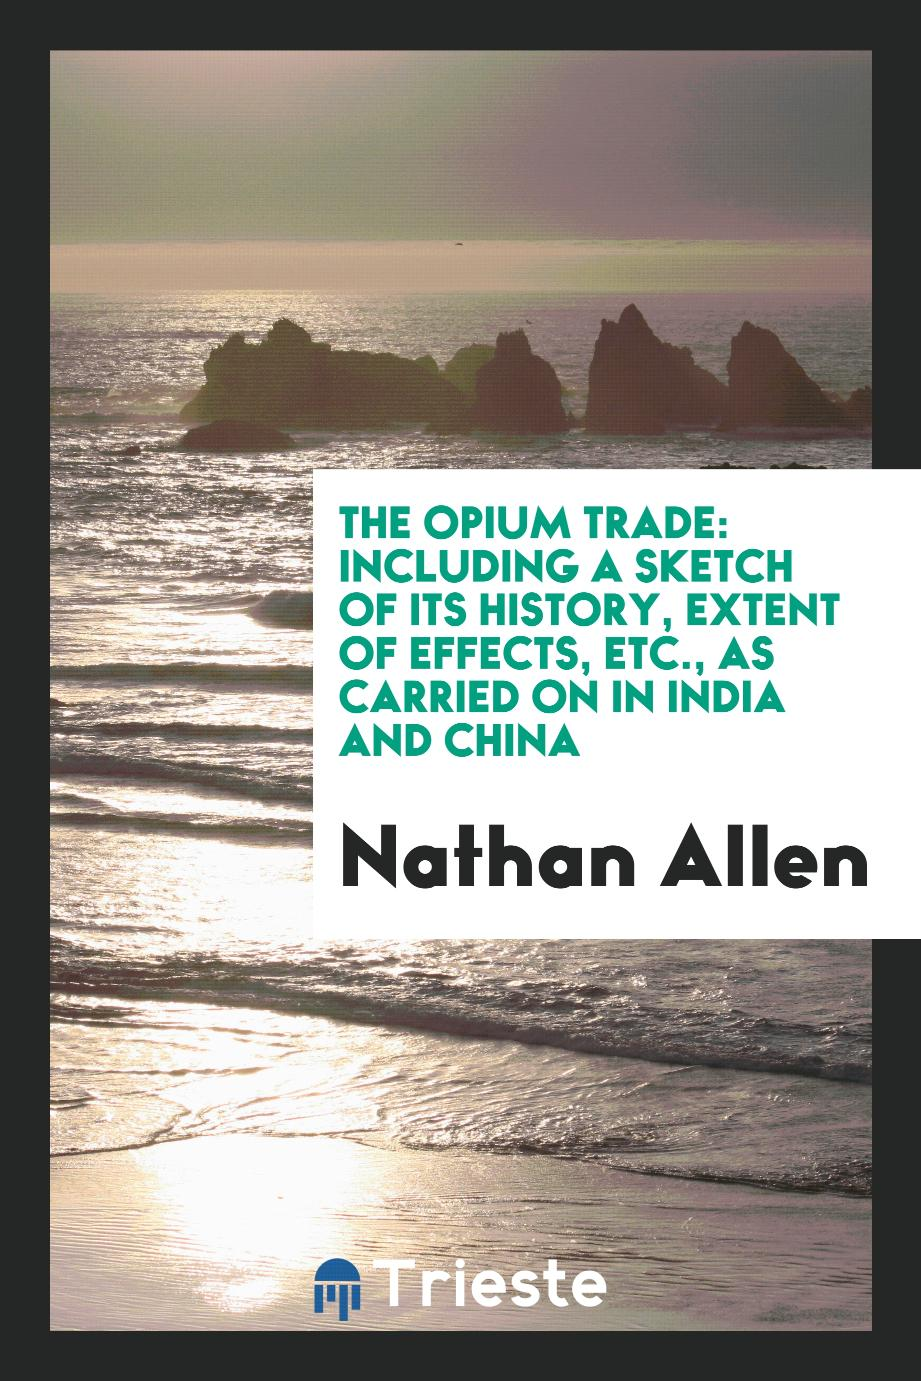 The opium trade: Including a Sketch of Its History, Extent of Effects, Etc., as Carried on in India and China